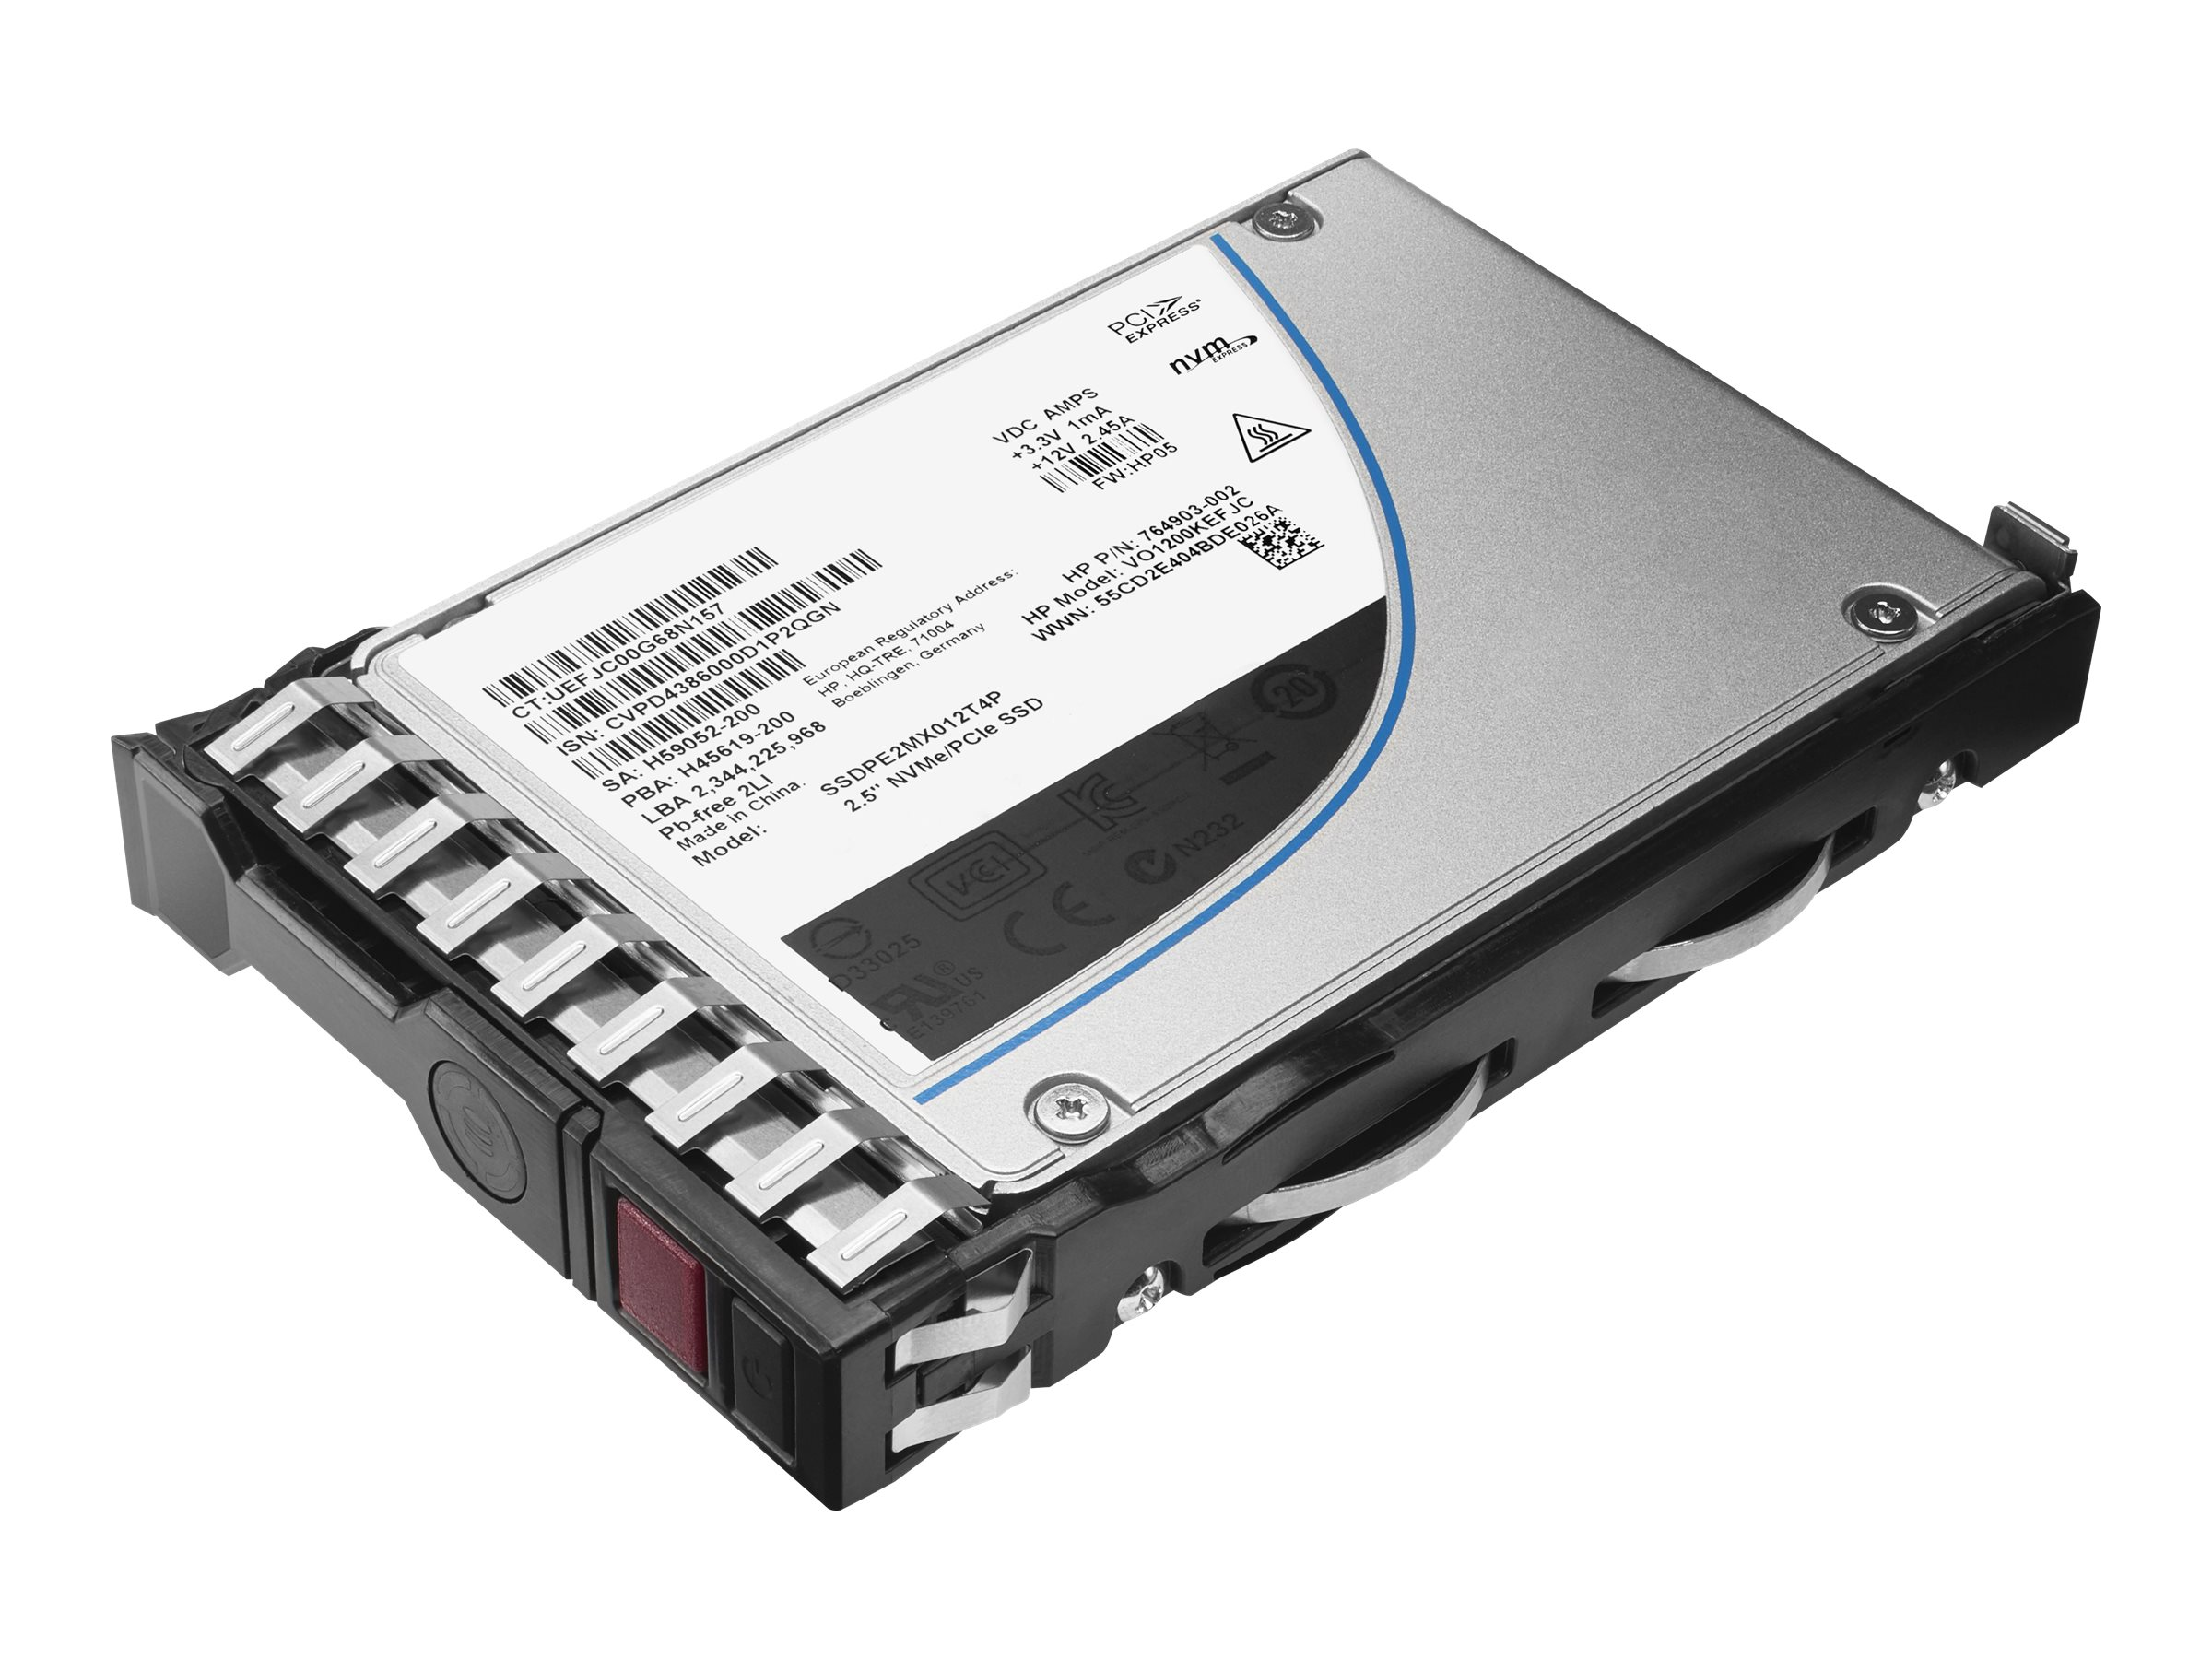 HPE Value Endurance Enterprise Boot - solid state drive - 120 GB - SATA 6Gb/s